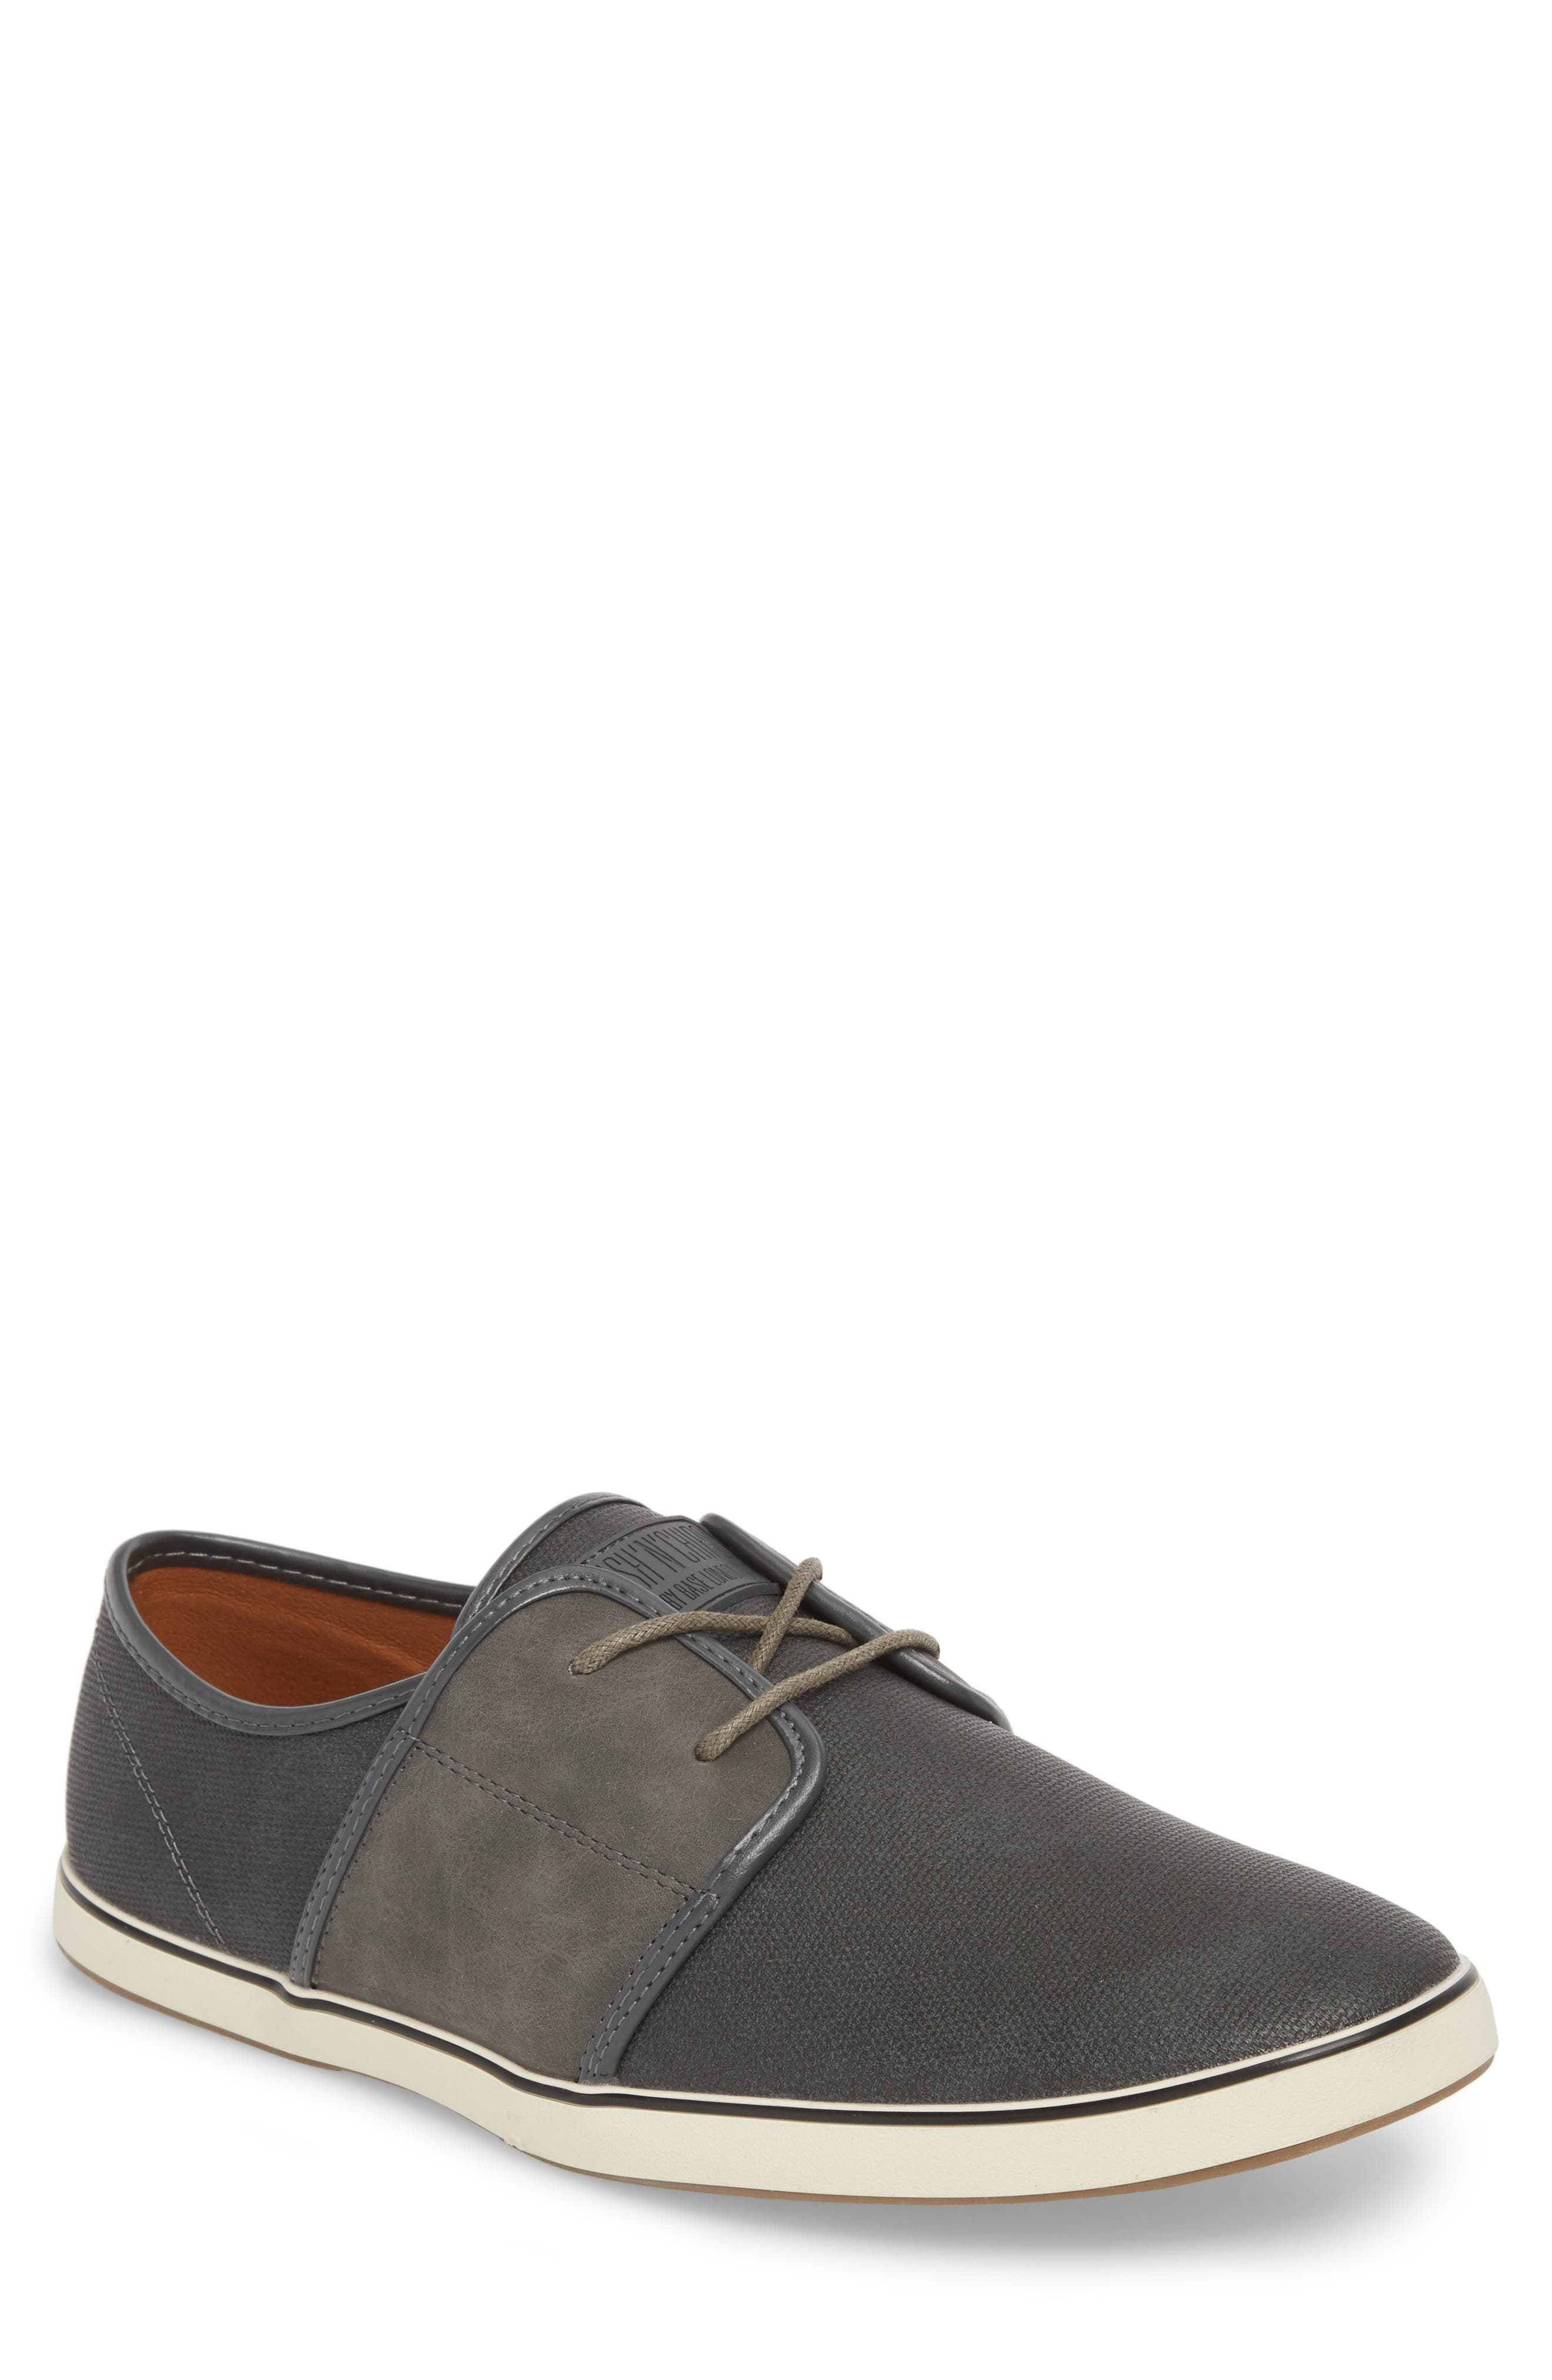 Fish 'N' Chips Madrid Sneaker,                         Main,                         color, CHARCOAL